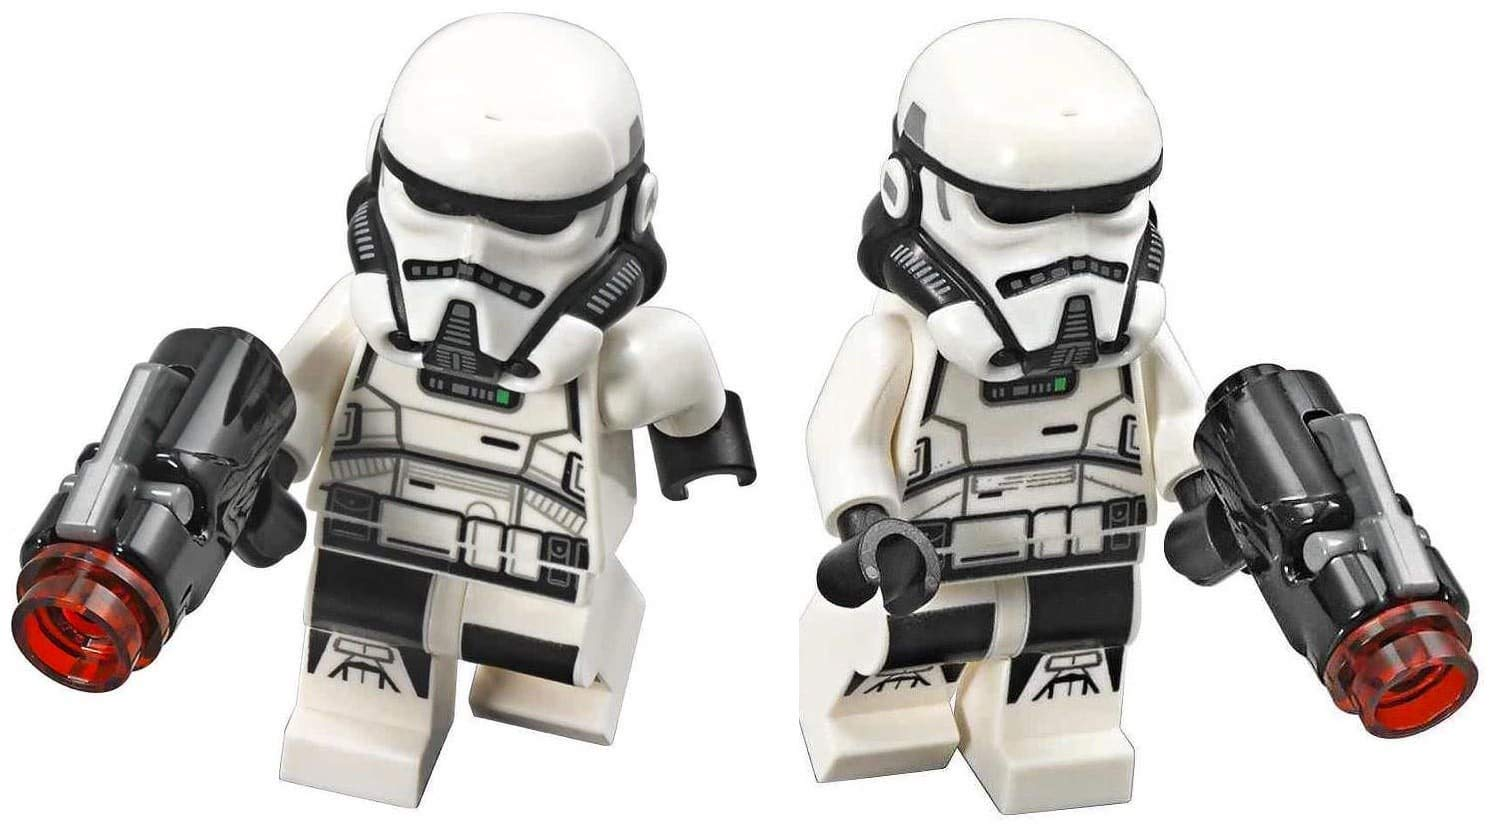 Solo: ASWS Imperial Patrol Troopers Lego Mini Figure 2-pack